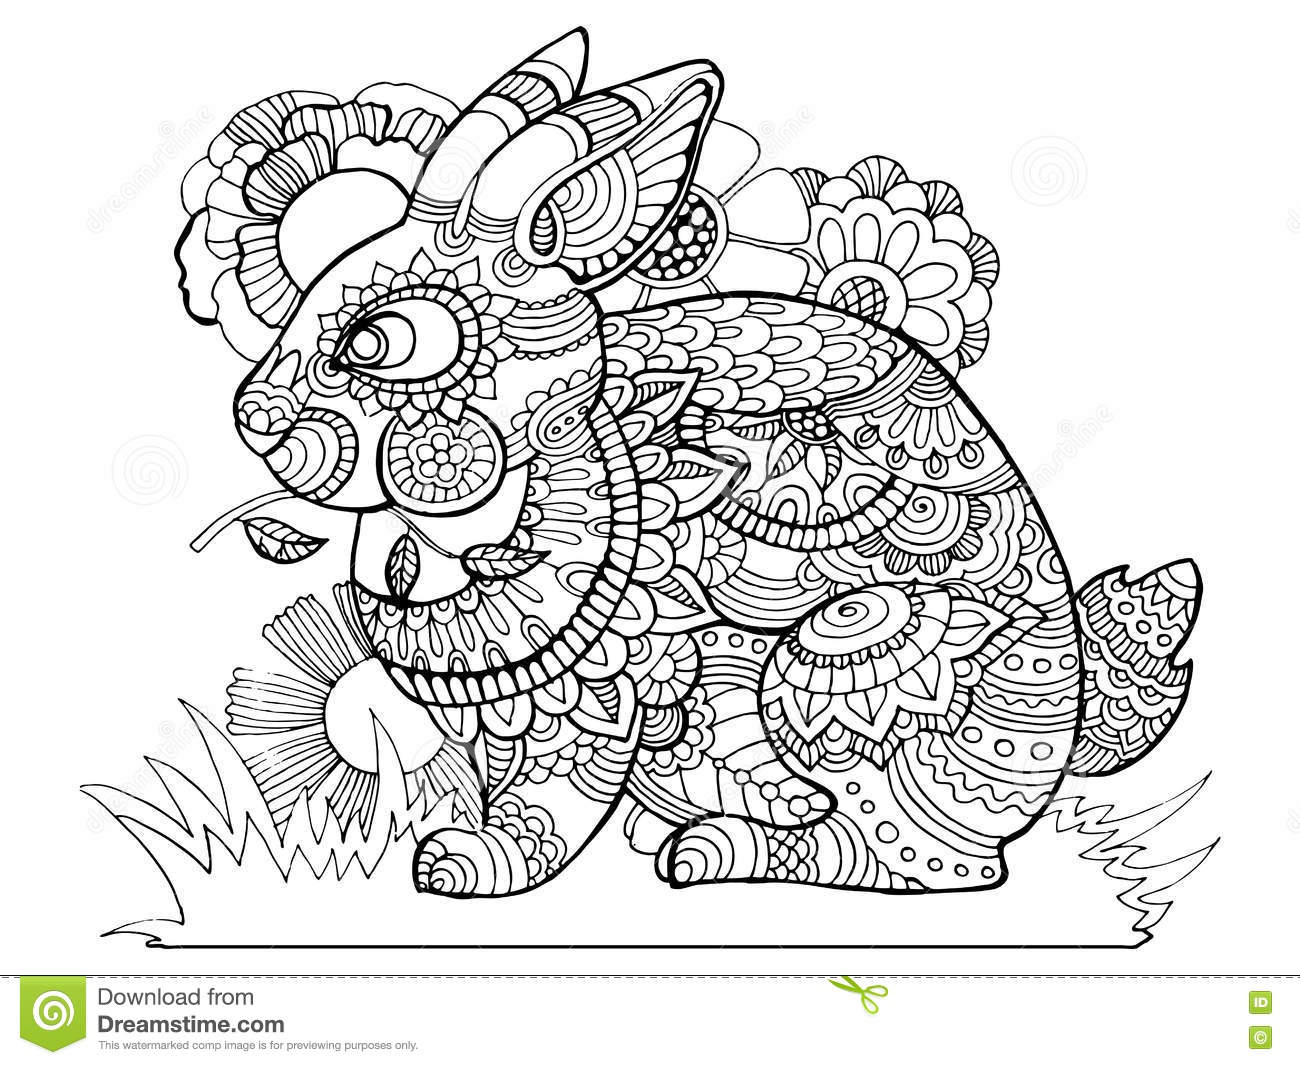 Rabbit Bunny Coloring Book For Adults Vector Illustration Anti stress